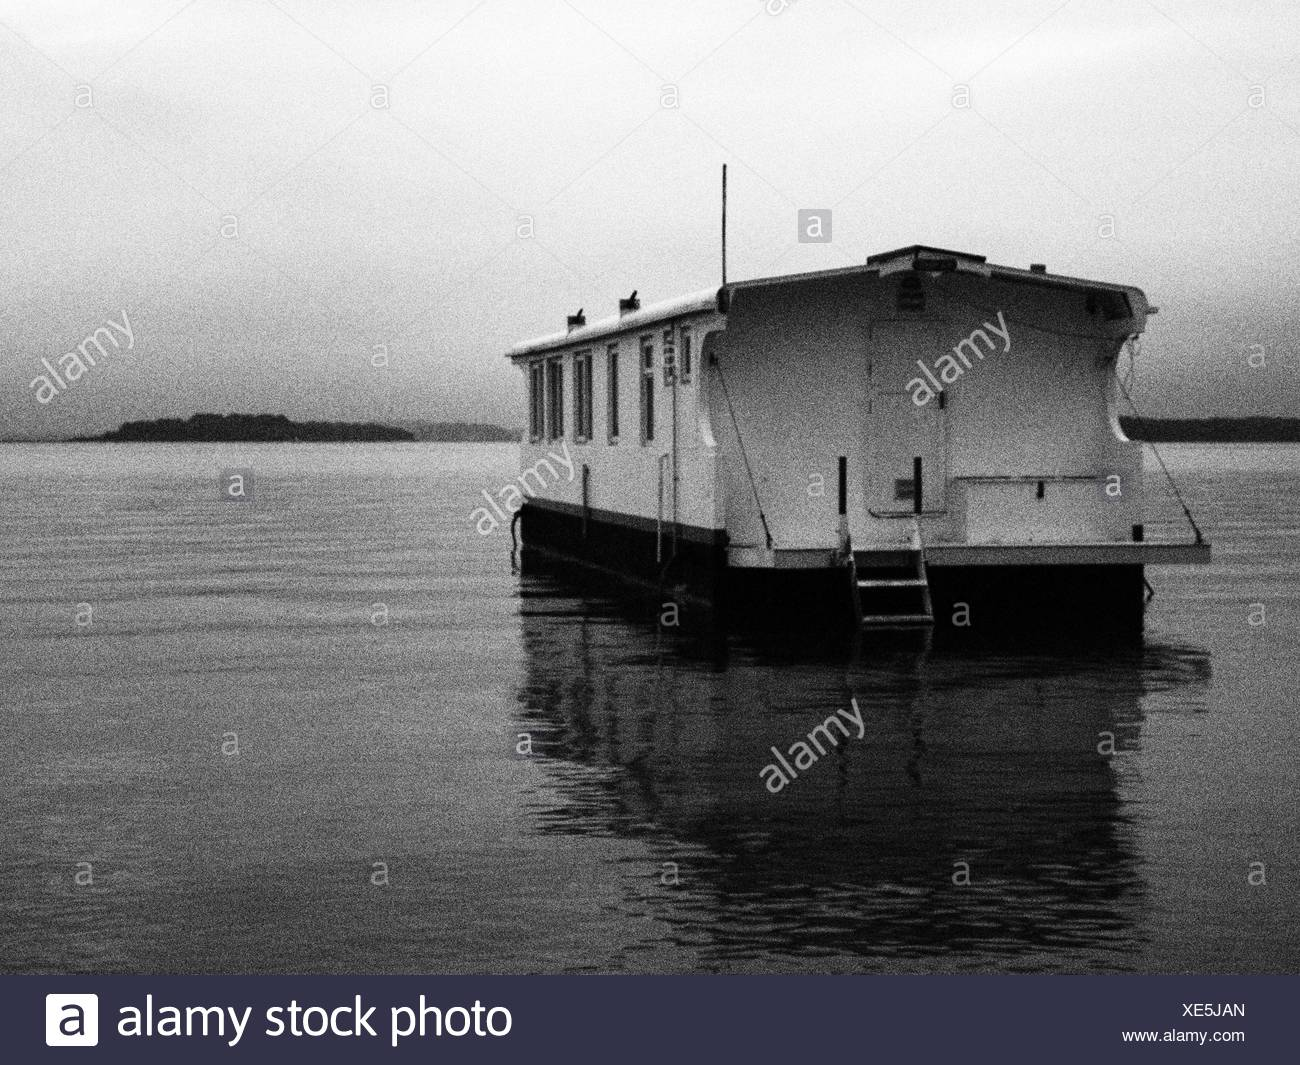 Grainy Image Of Living Boat - Stock Image